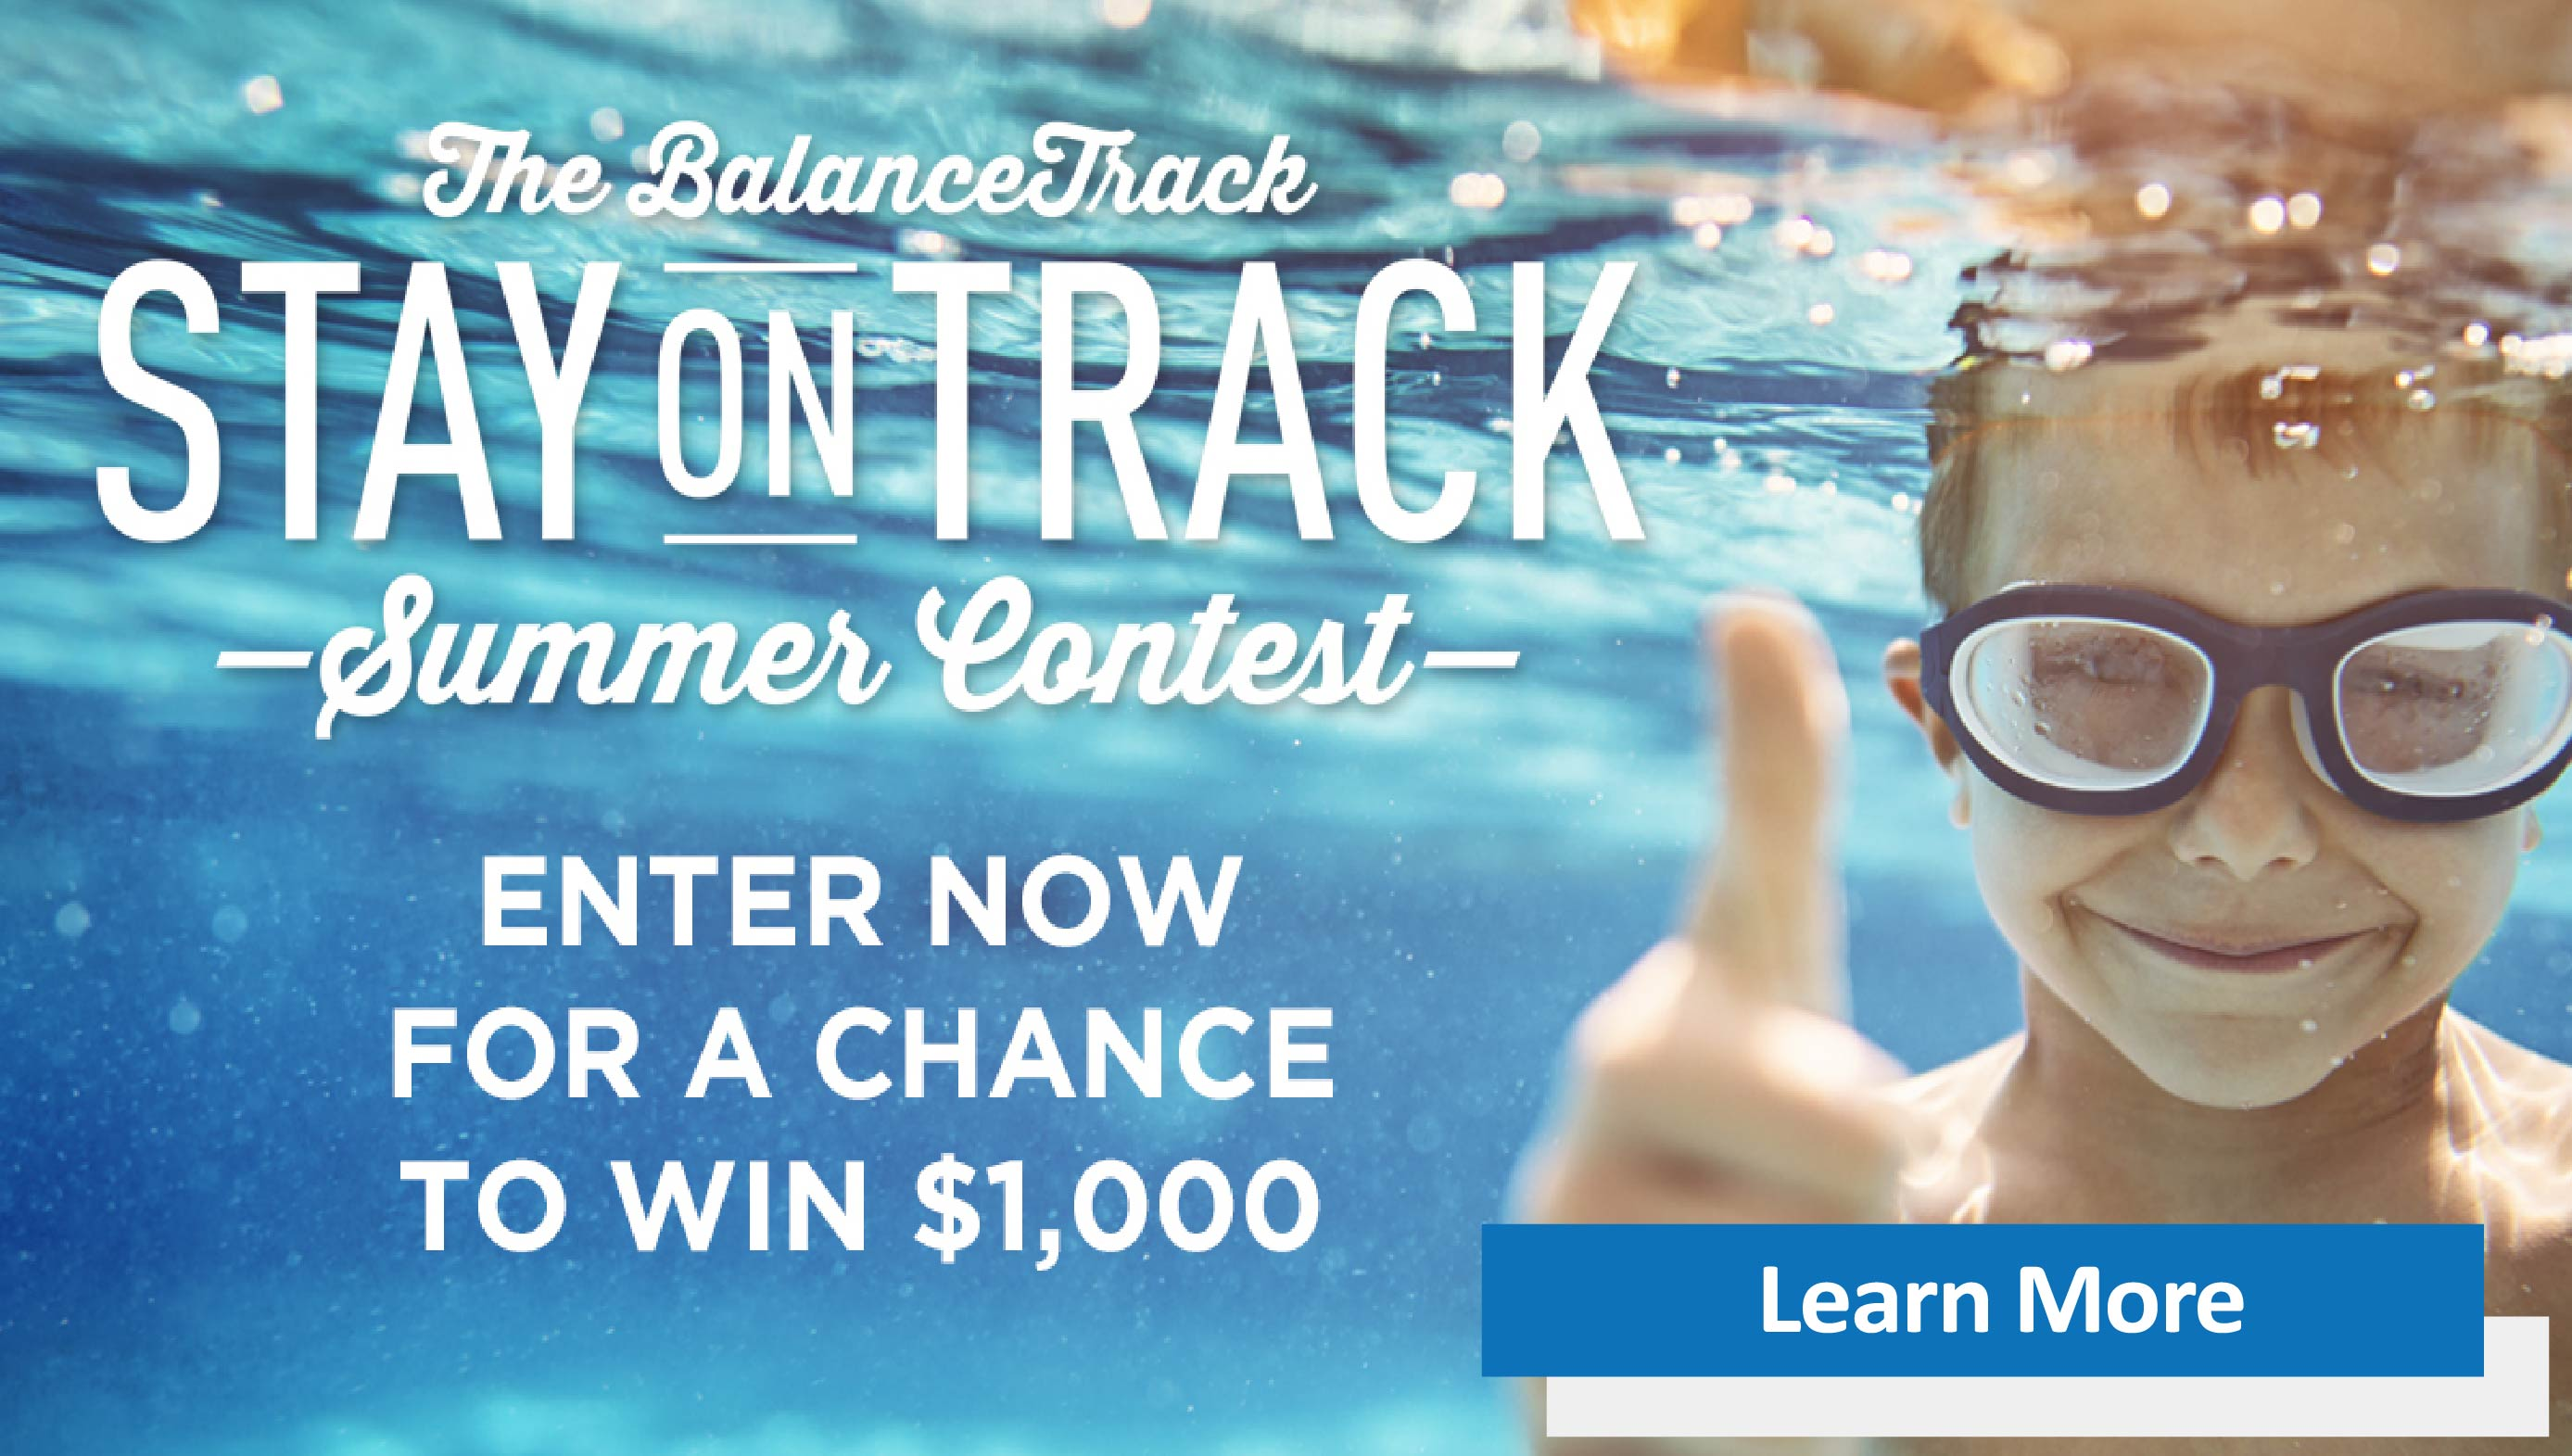 Enter Now for a chance to win $1000!